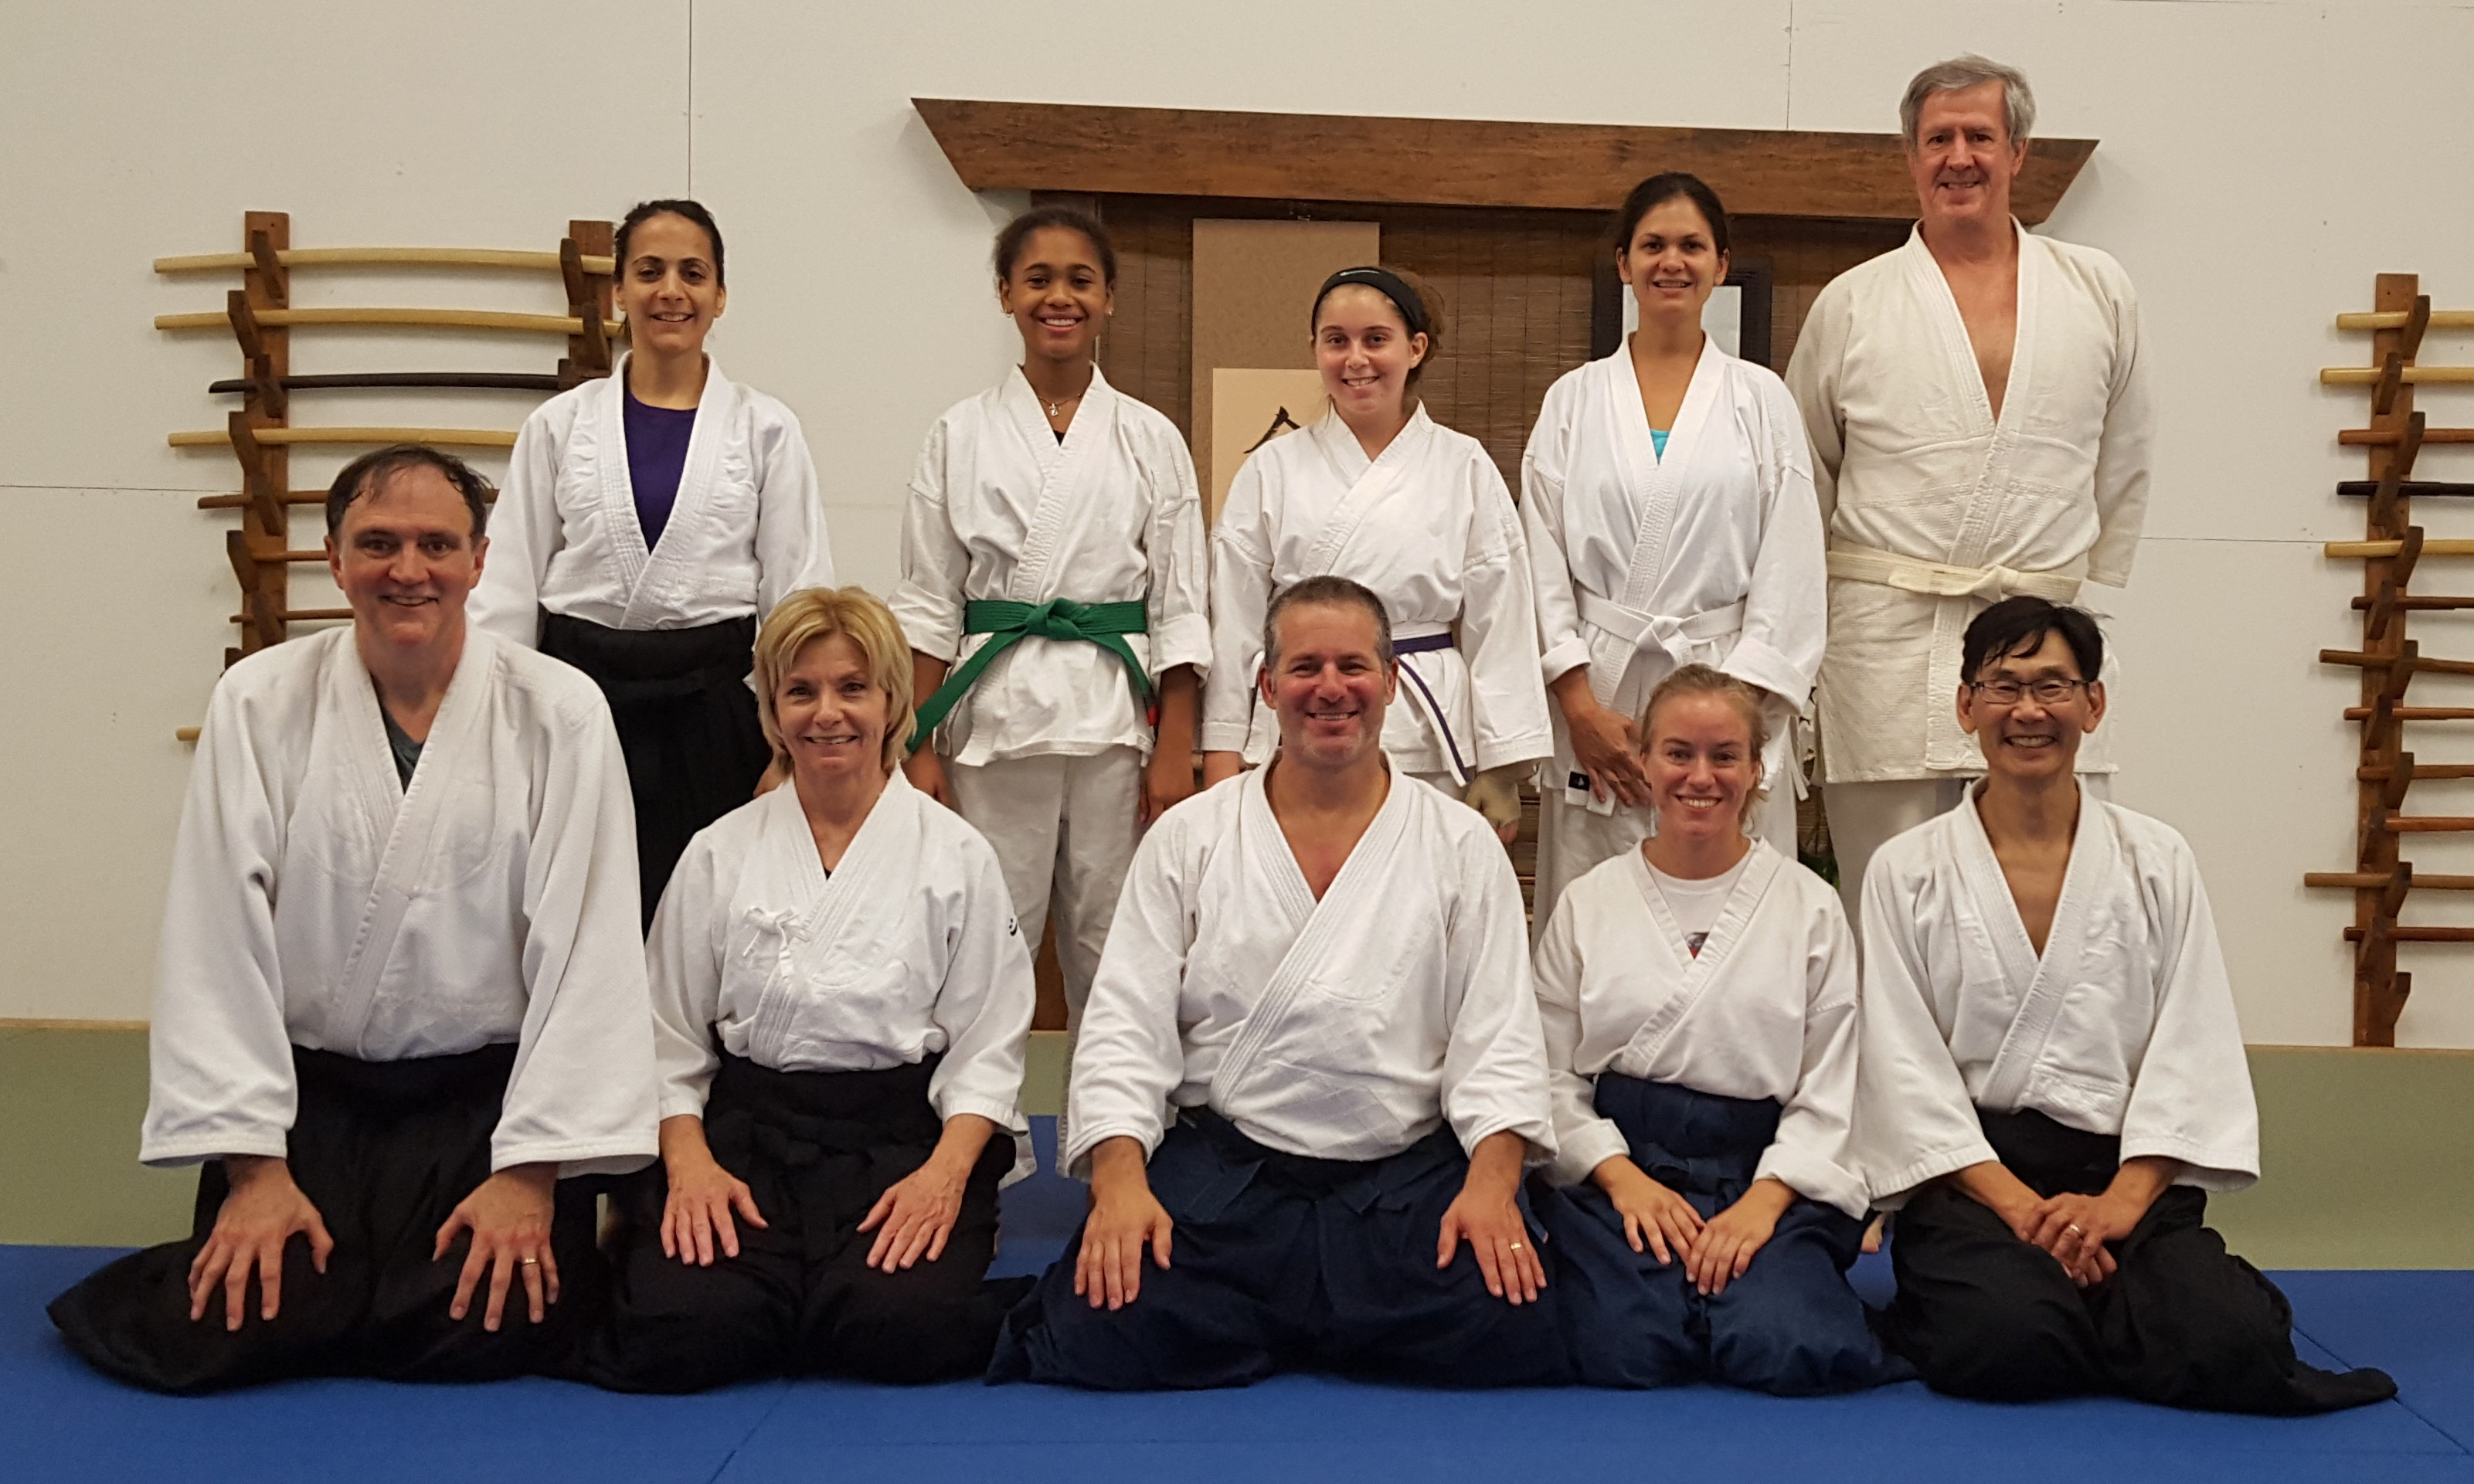 aikido instructors and students at seminar